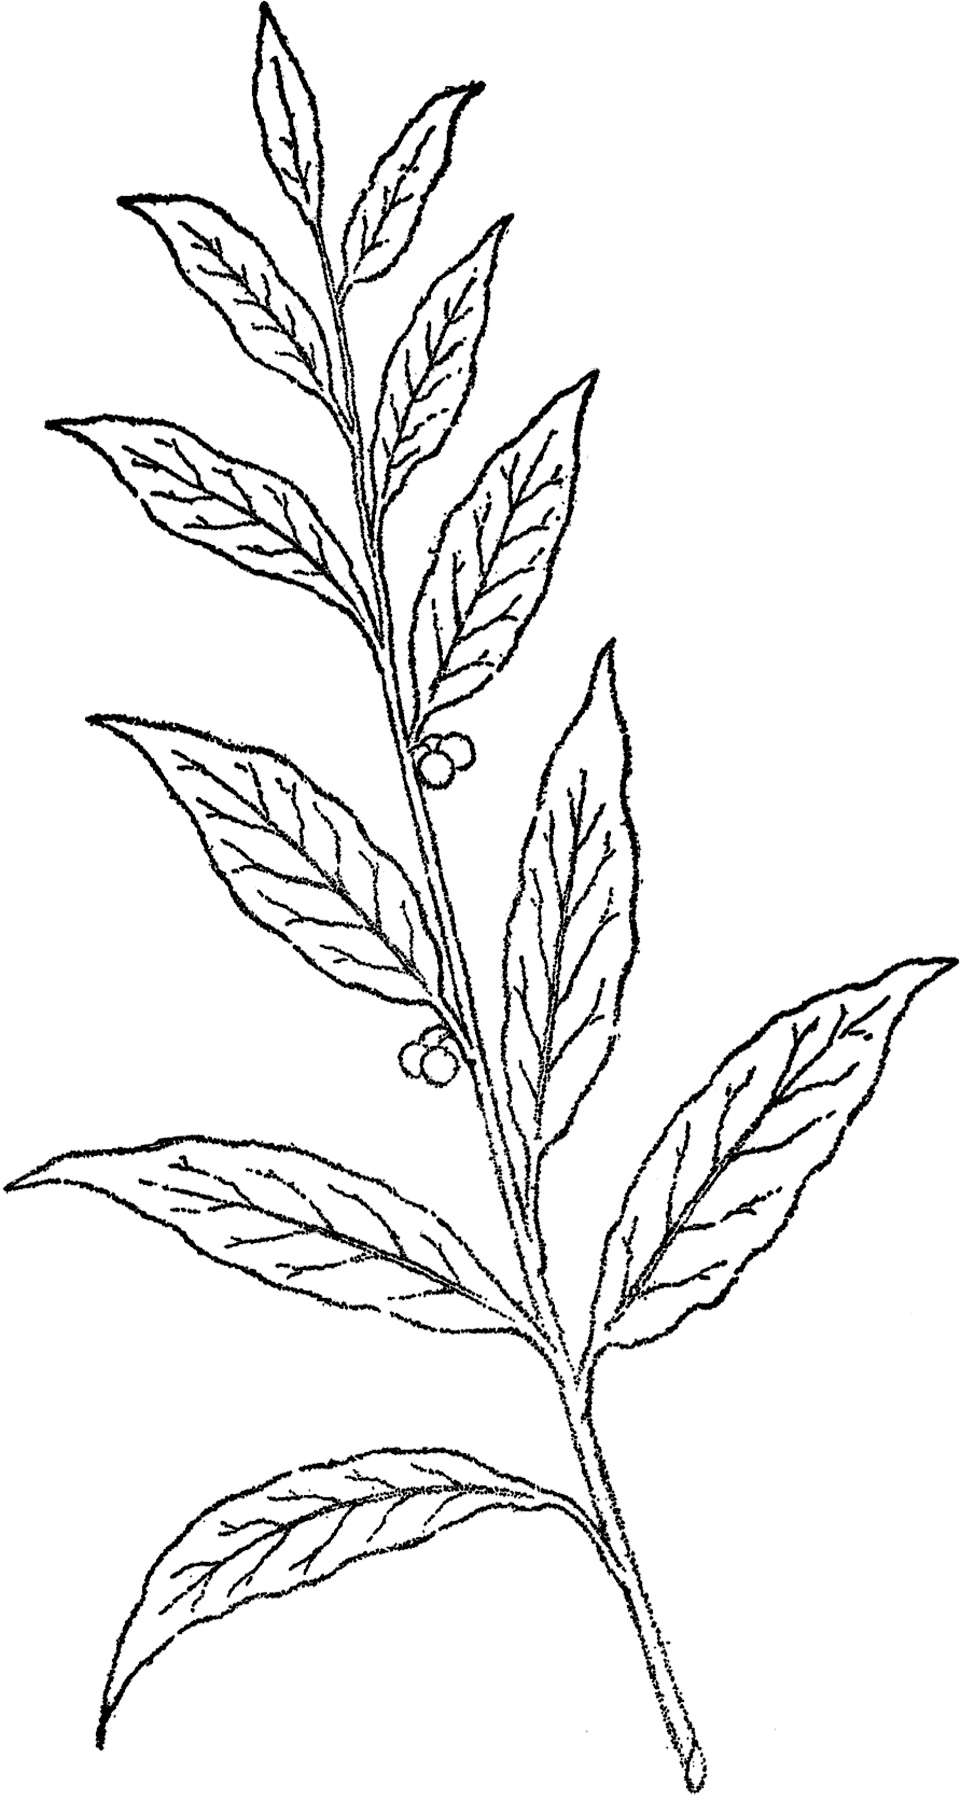 Flower Leaf Line Drawing : Pretty berry branch line art the graphics fairy